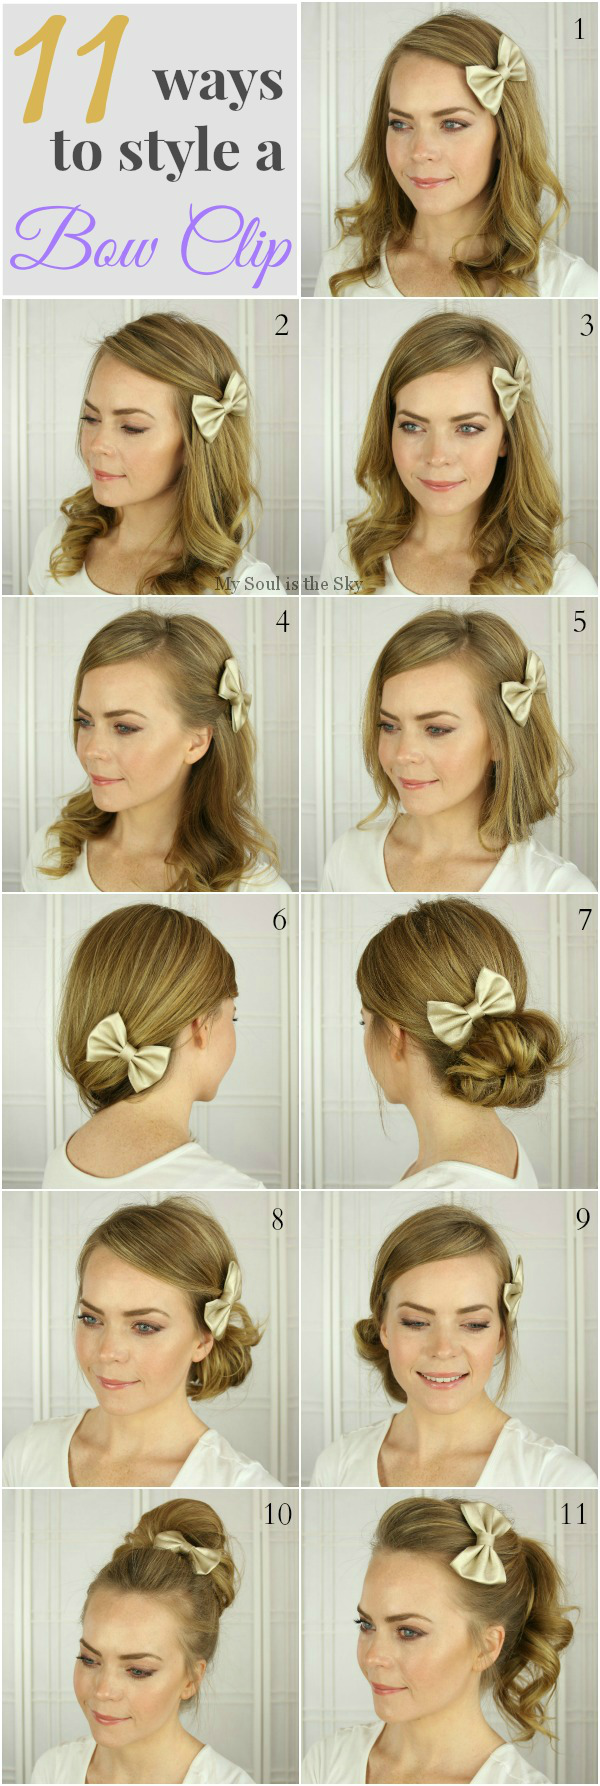 Hairstyles With A Bow Hair Styles Easy Hairstyles Hair Beauty